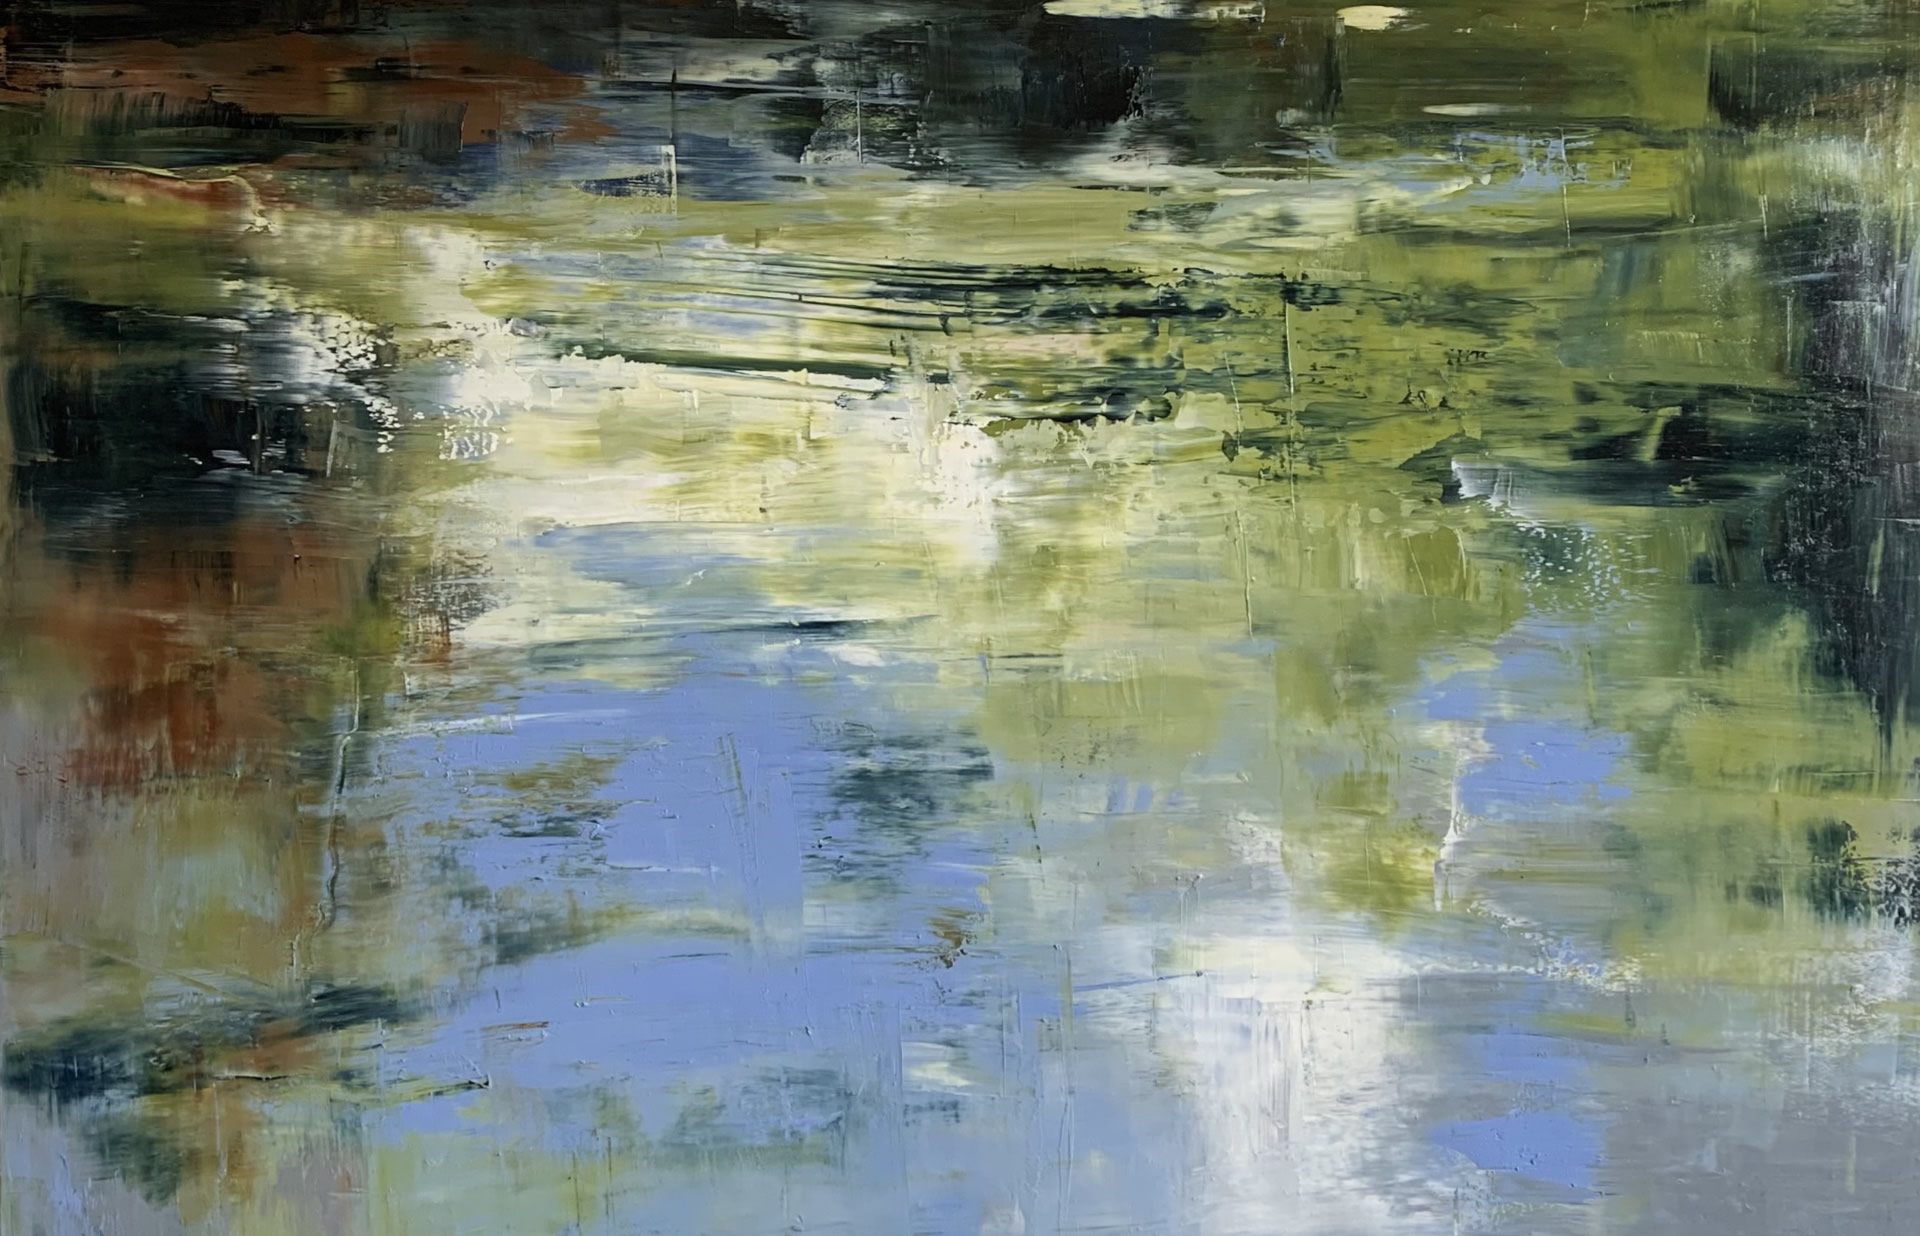 Sue-A-Miller-Floating-On-The-Edge-2021-Online-Art-Galleries-1236